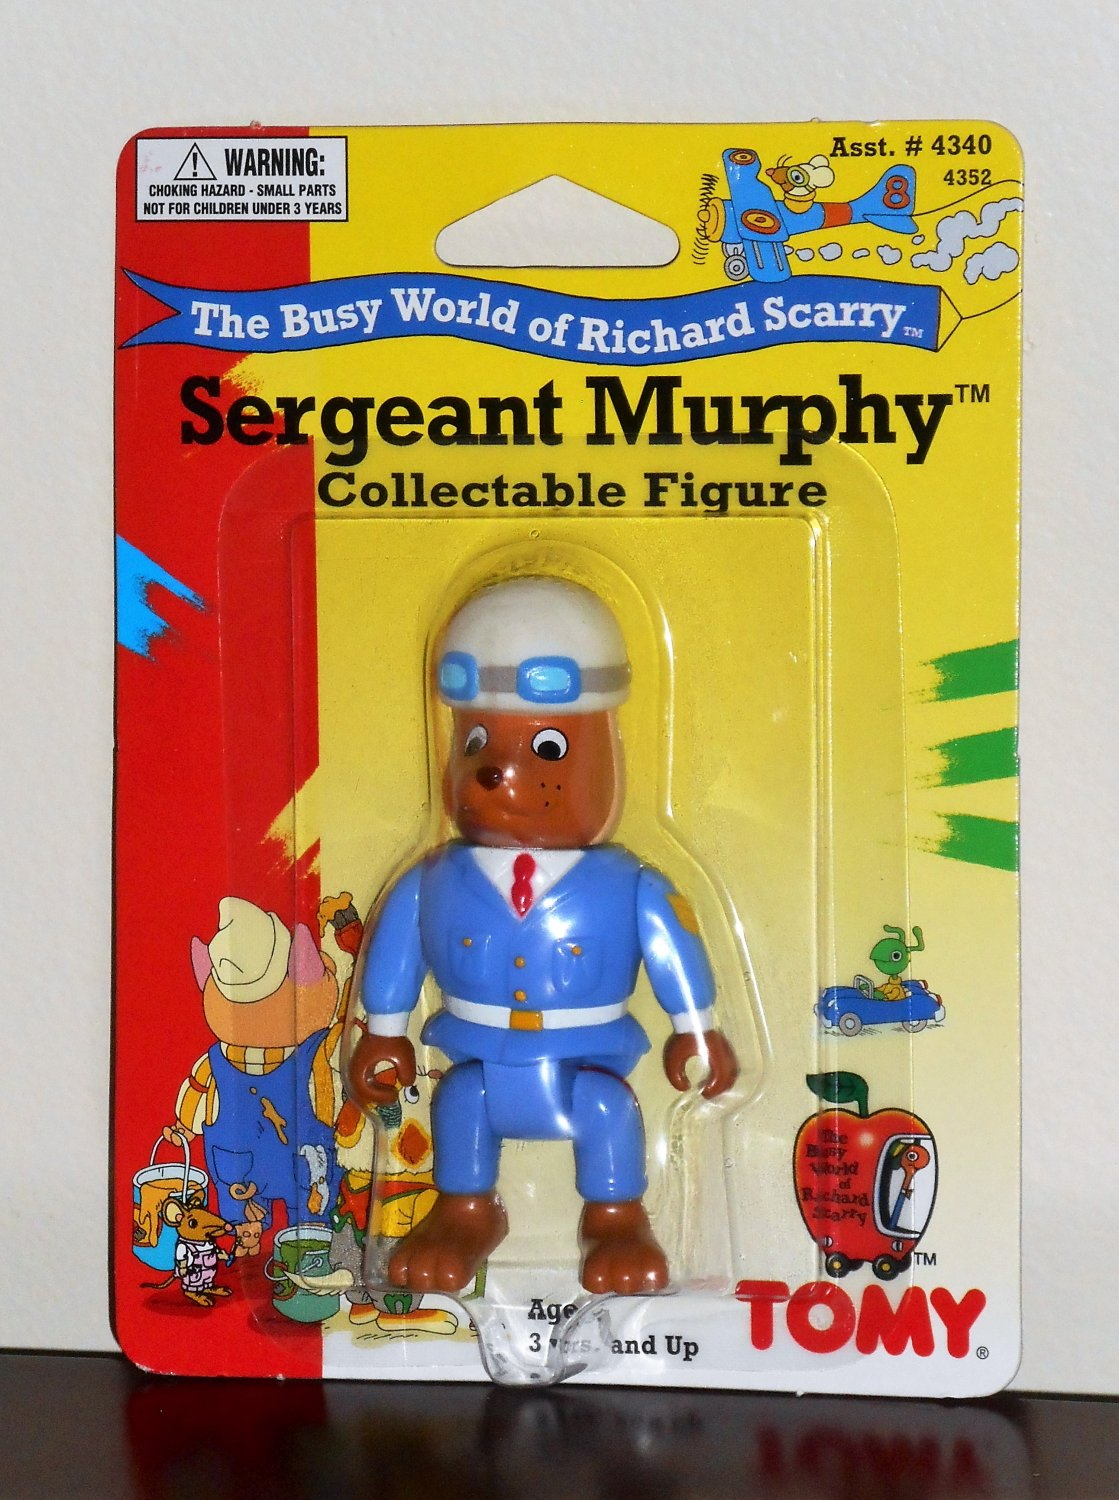 Sergeant Murphy Collectible Figure Tomy 4352 Busy World of Richard Scarry 1995 NIP Posable Arms Legs